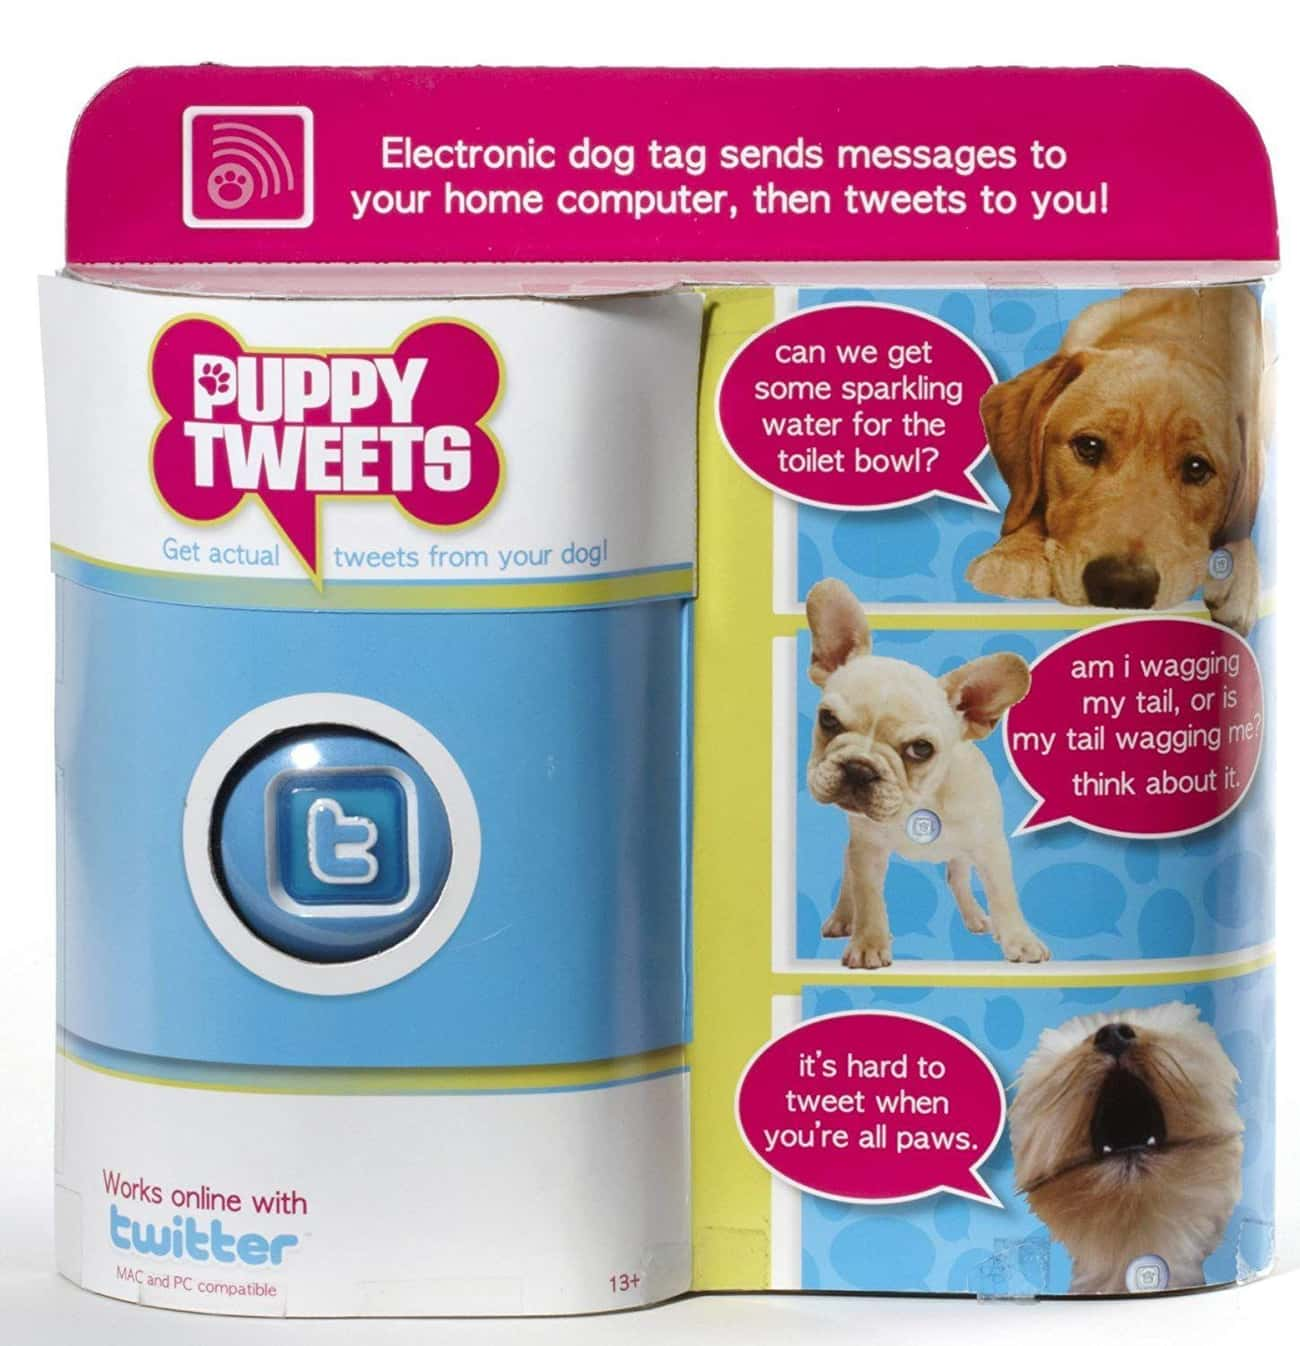 An Accessory for Your Dog's Twitter Account